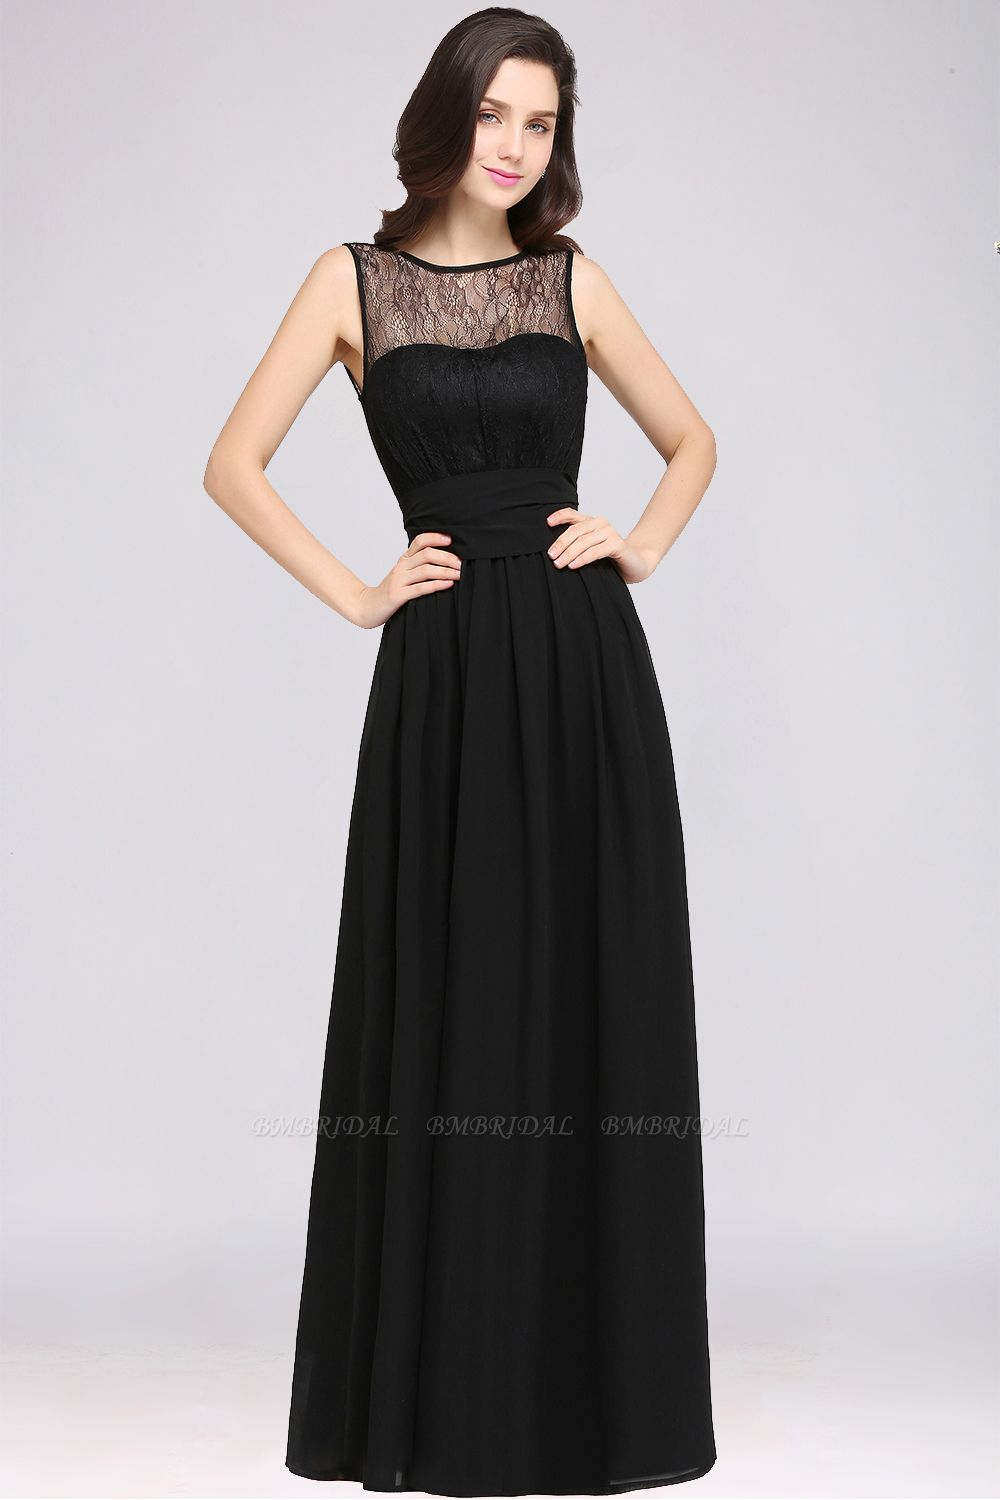 Chic Jewel Open-Back Bridesmaid Dress with Bow Lace Ruffle Maid of Honor Dresses